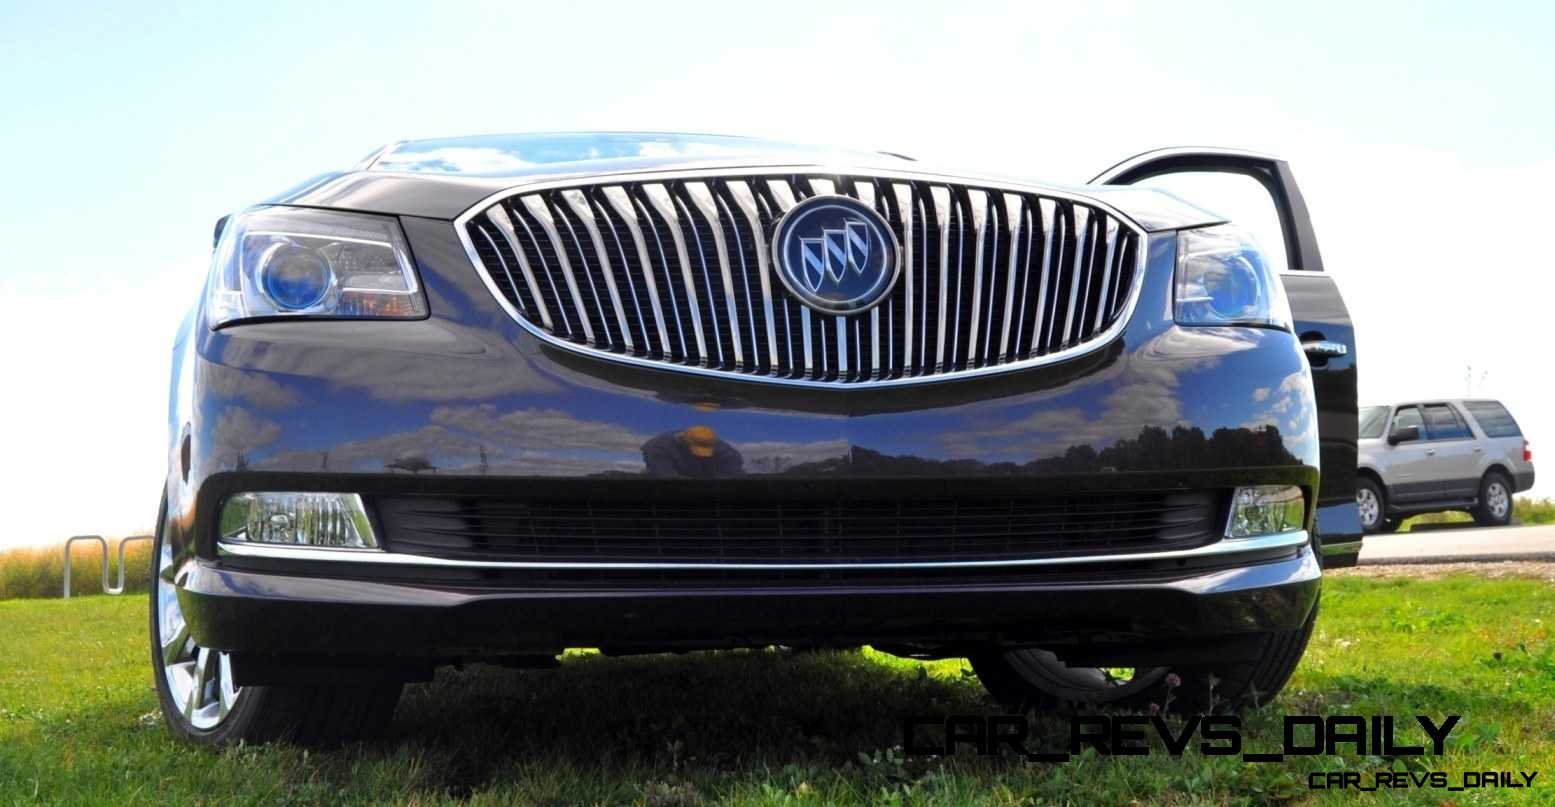 Driven Car Review - 2014 Buick LaCrosse Is Huge, Smooth and Silent8